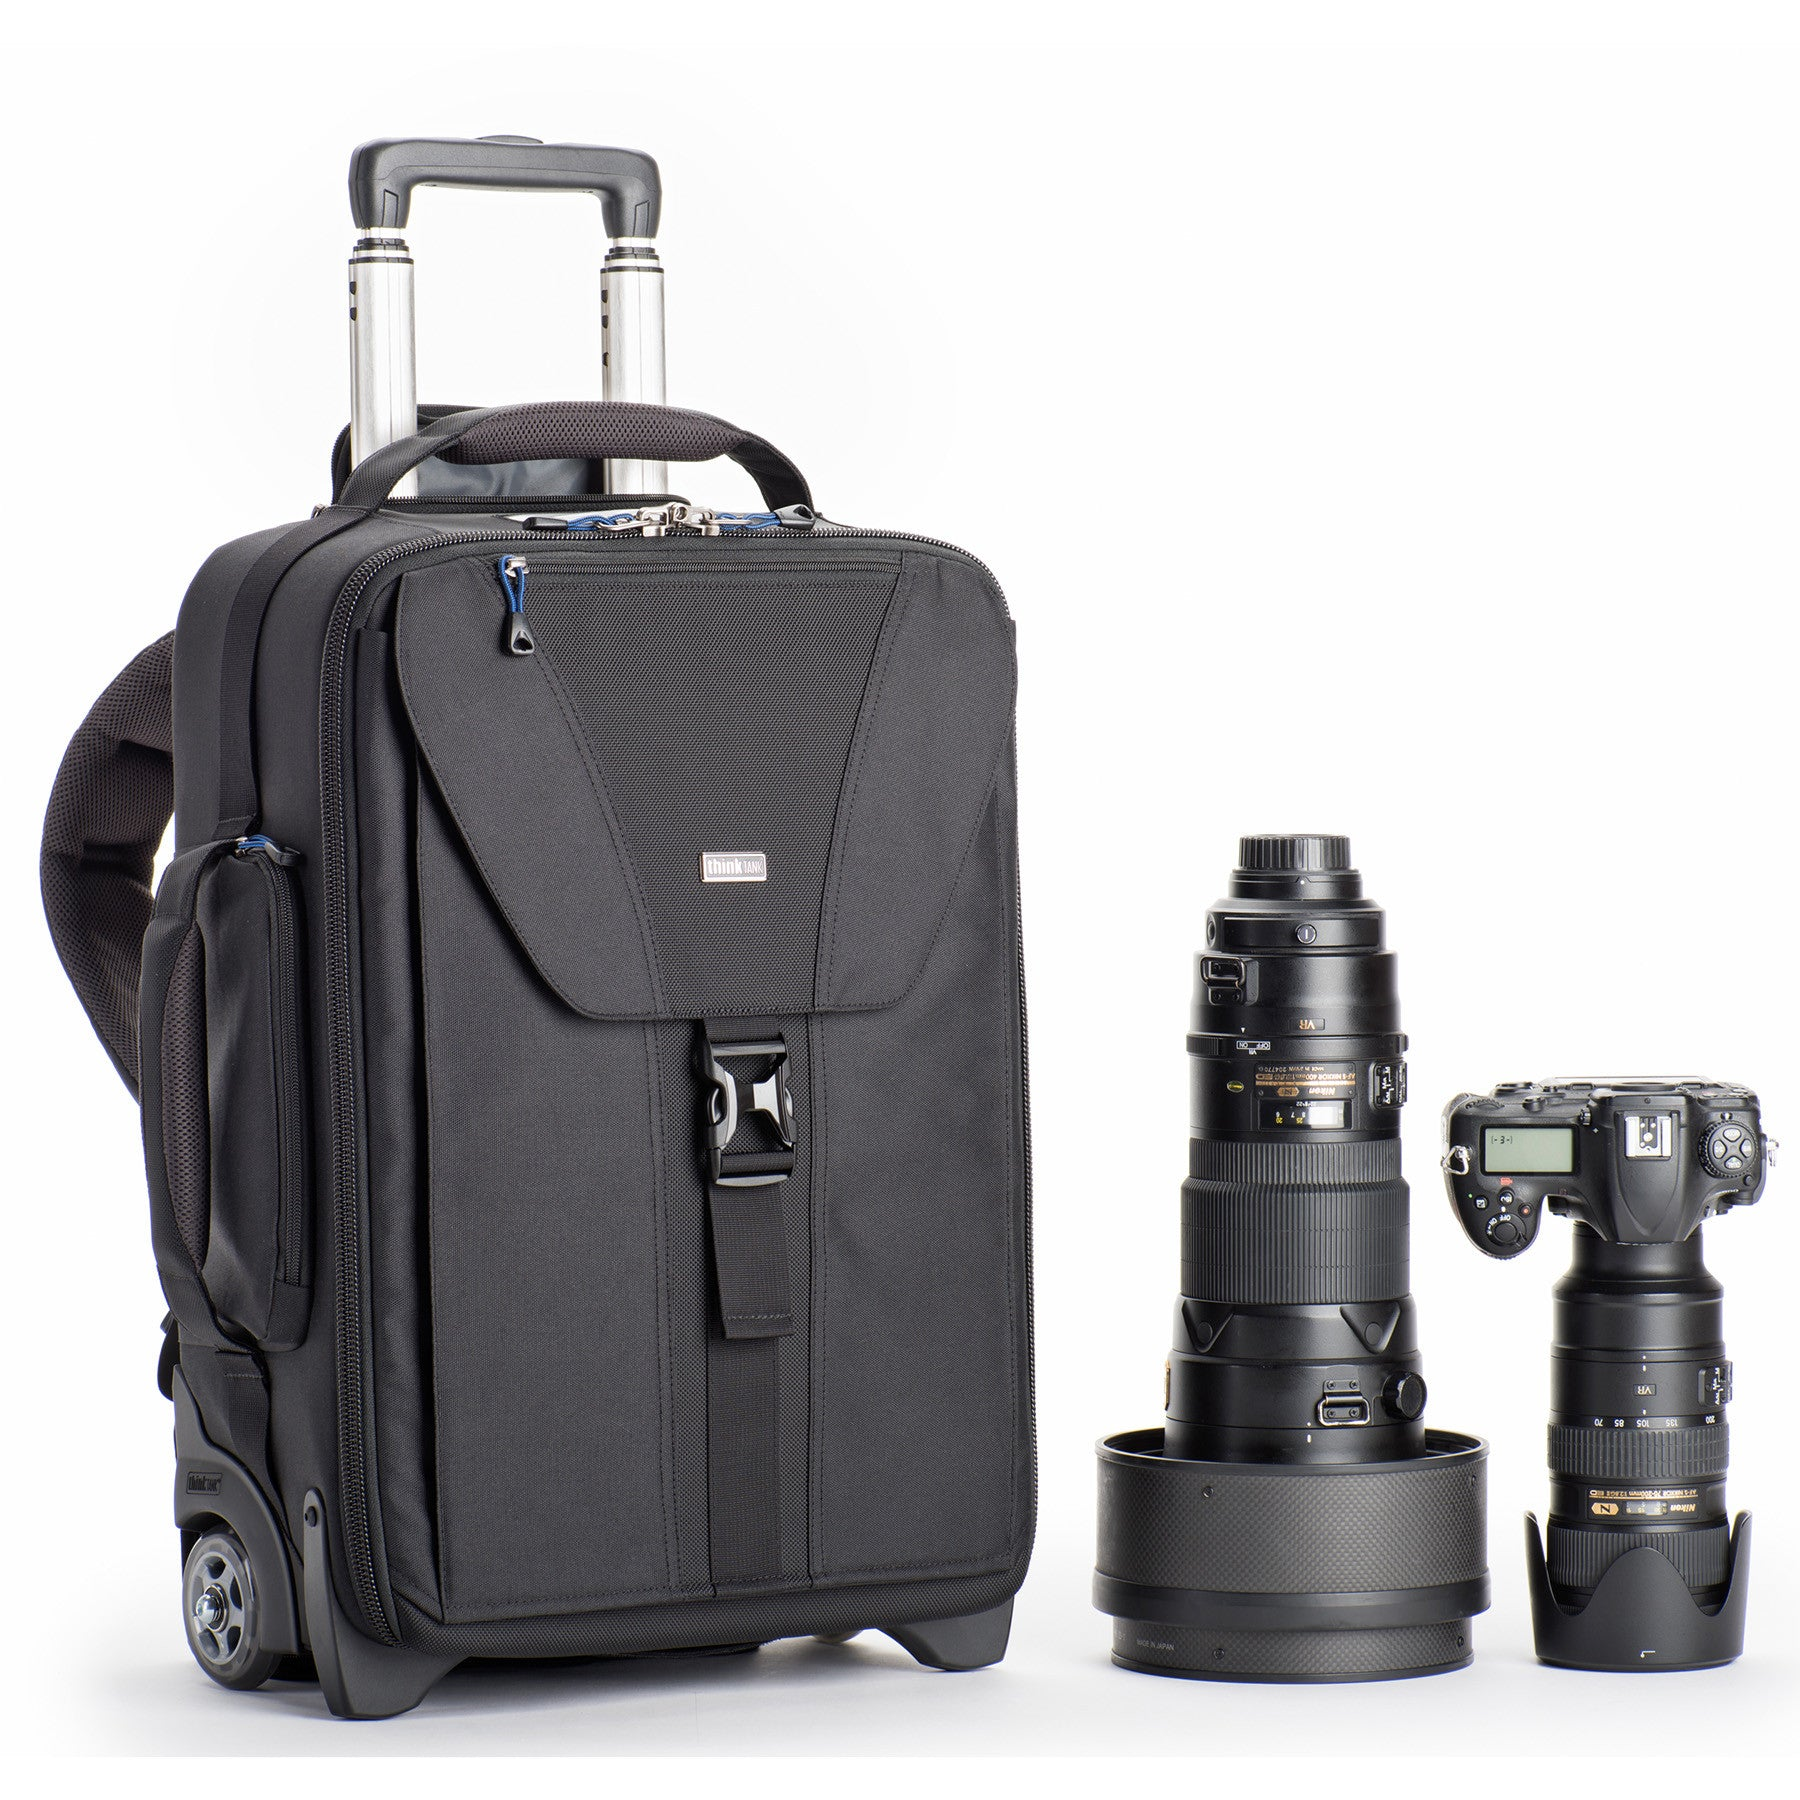 Airport TakeOff V2.0 is a roller bag that converts to a backpack.